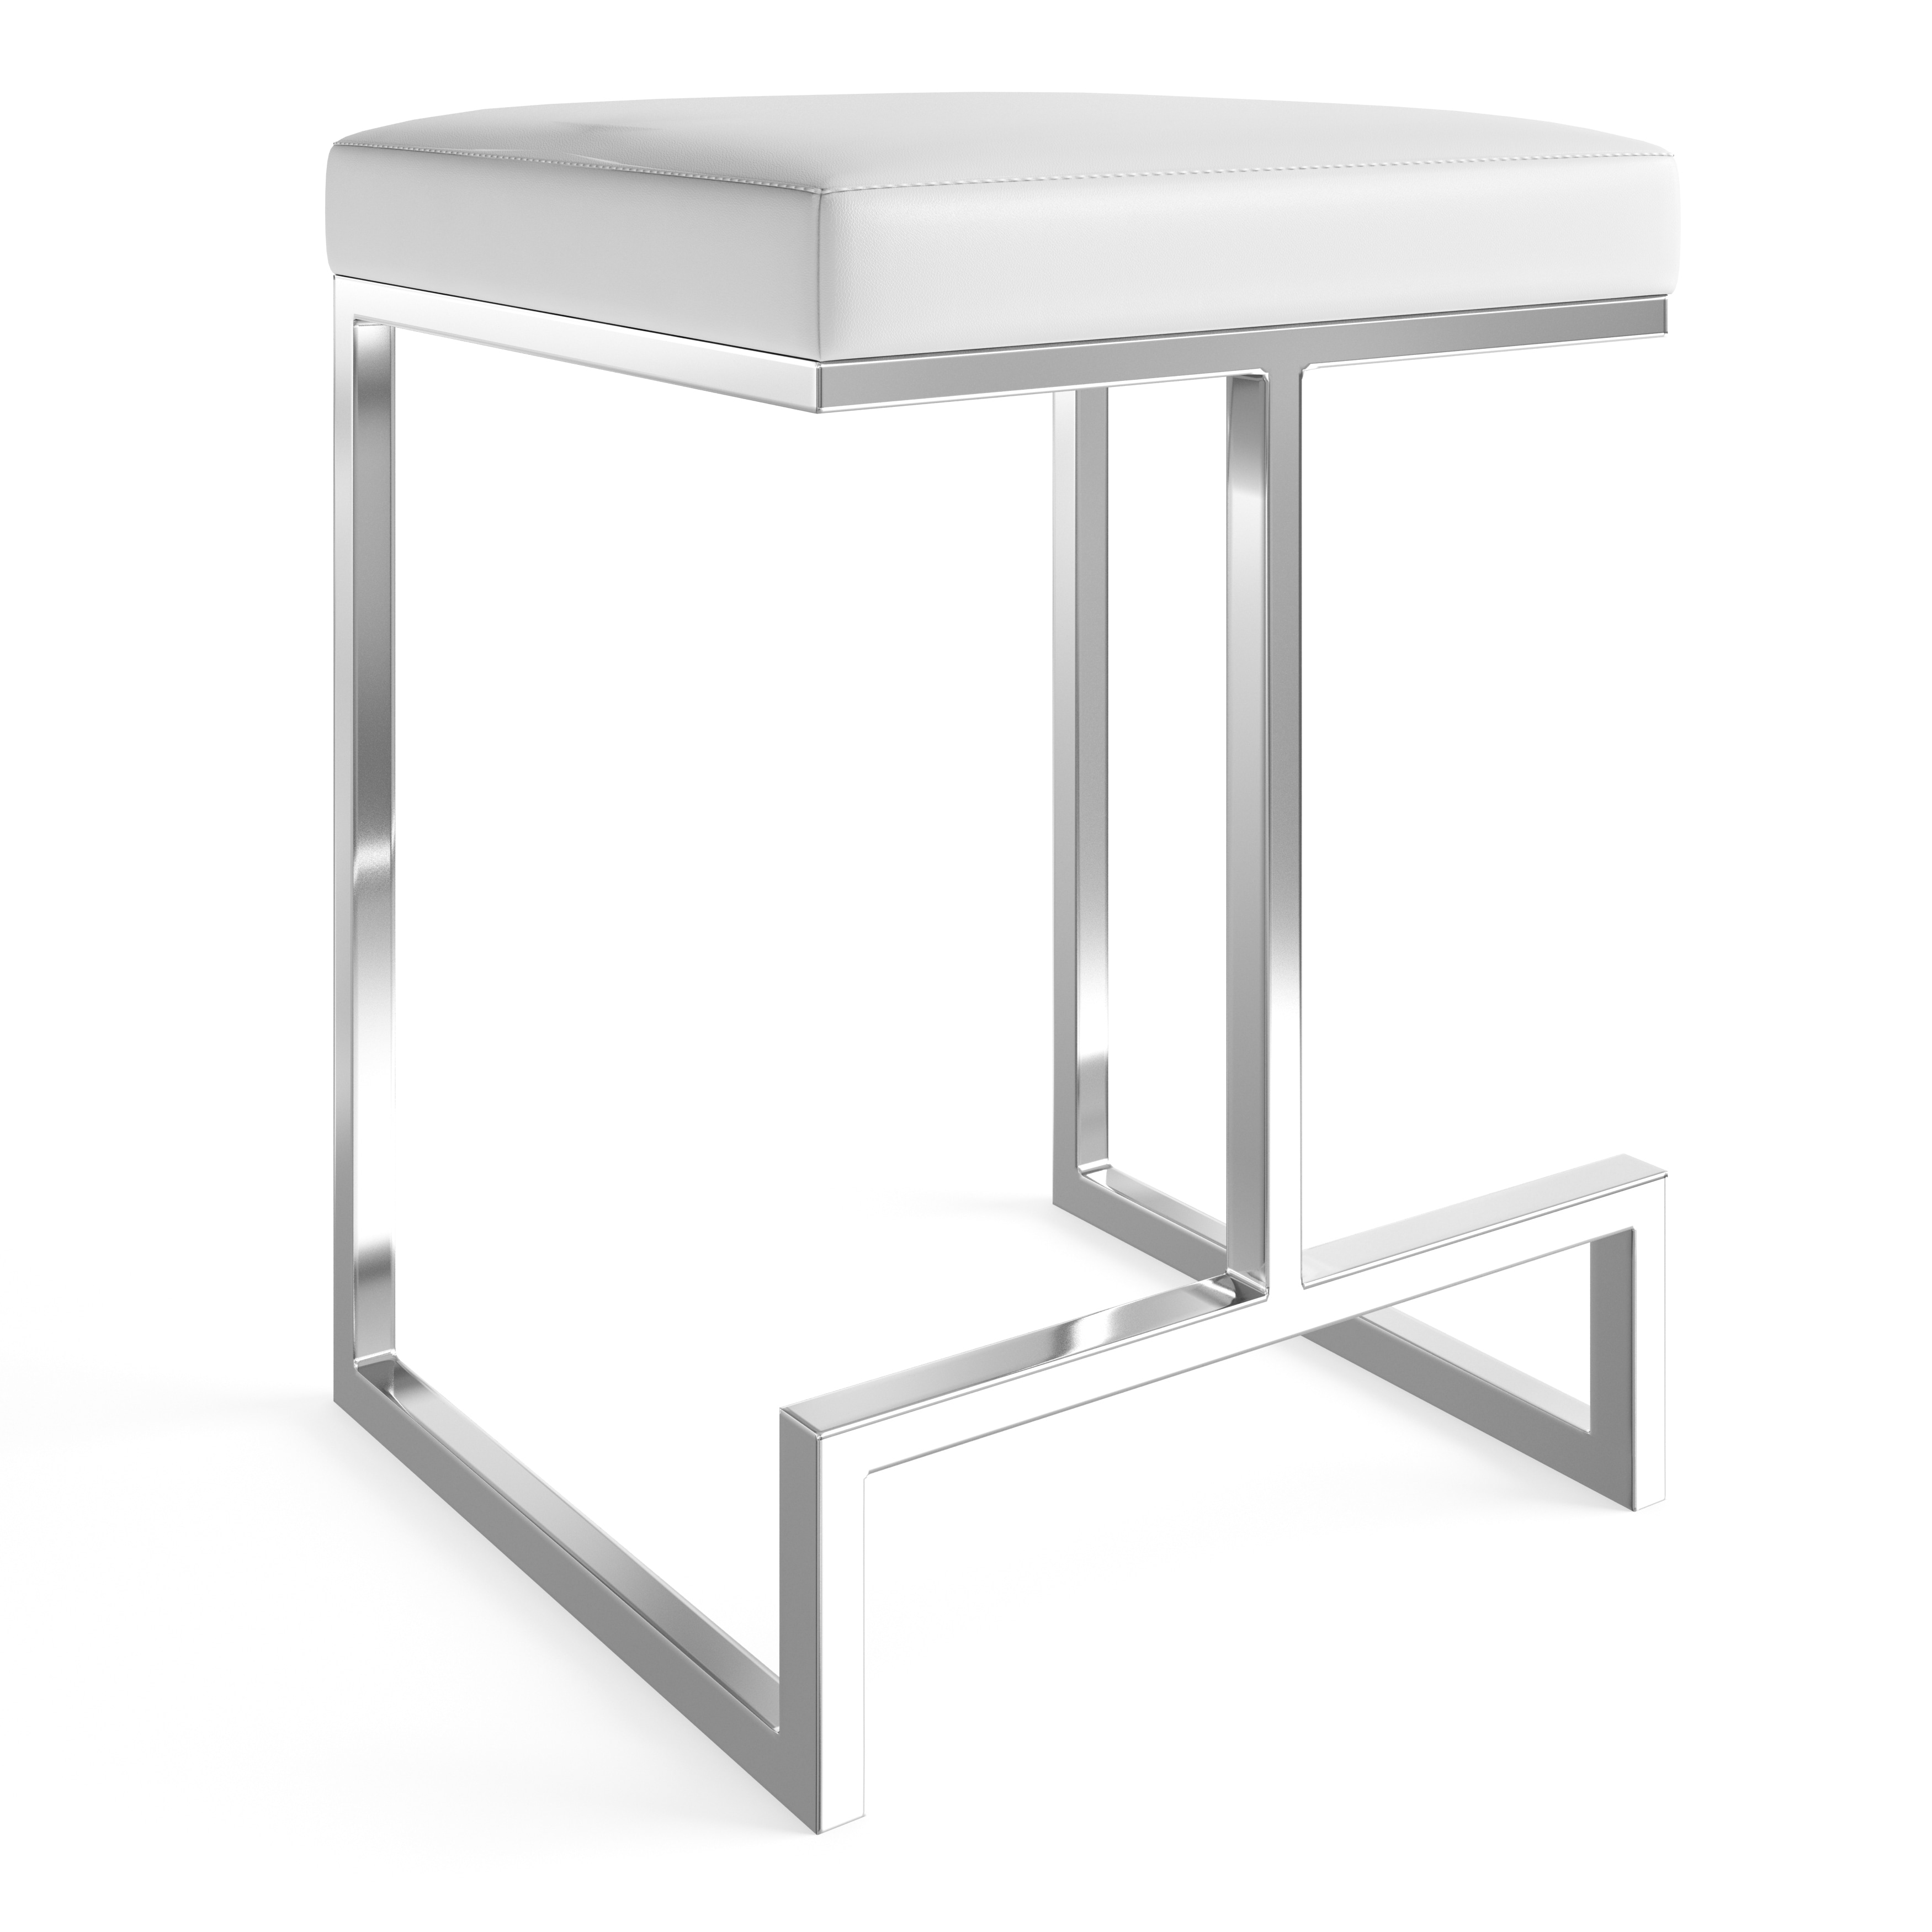 Enjoyable Strick Bolton Lucy Chrome Plated Metal Base 24 Inch Counter Height Stool Pabps2019 Chair Design Images Pabps2019Com